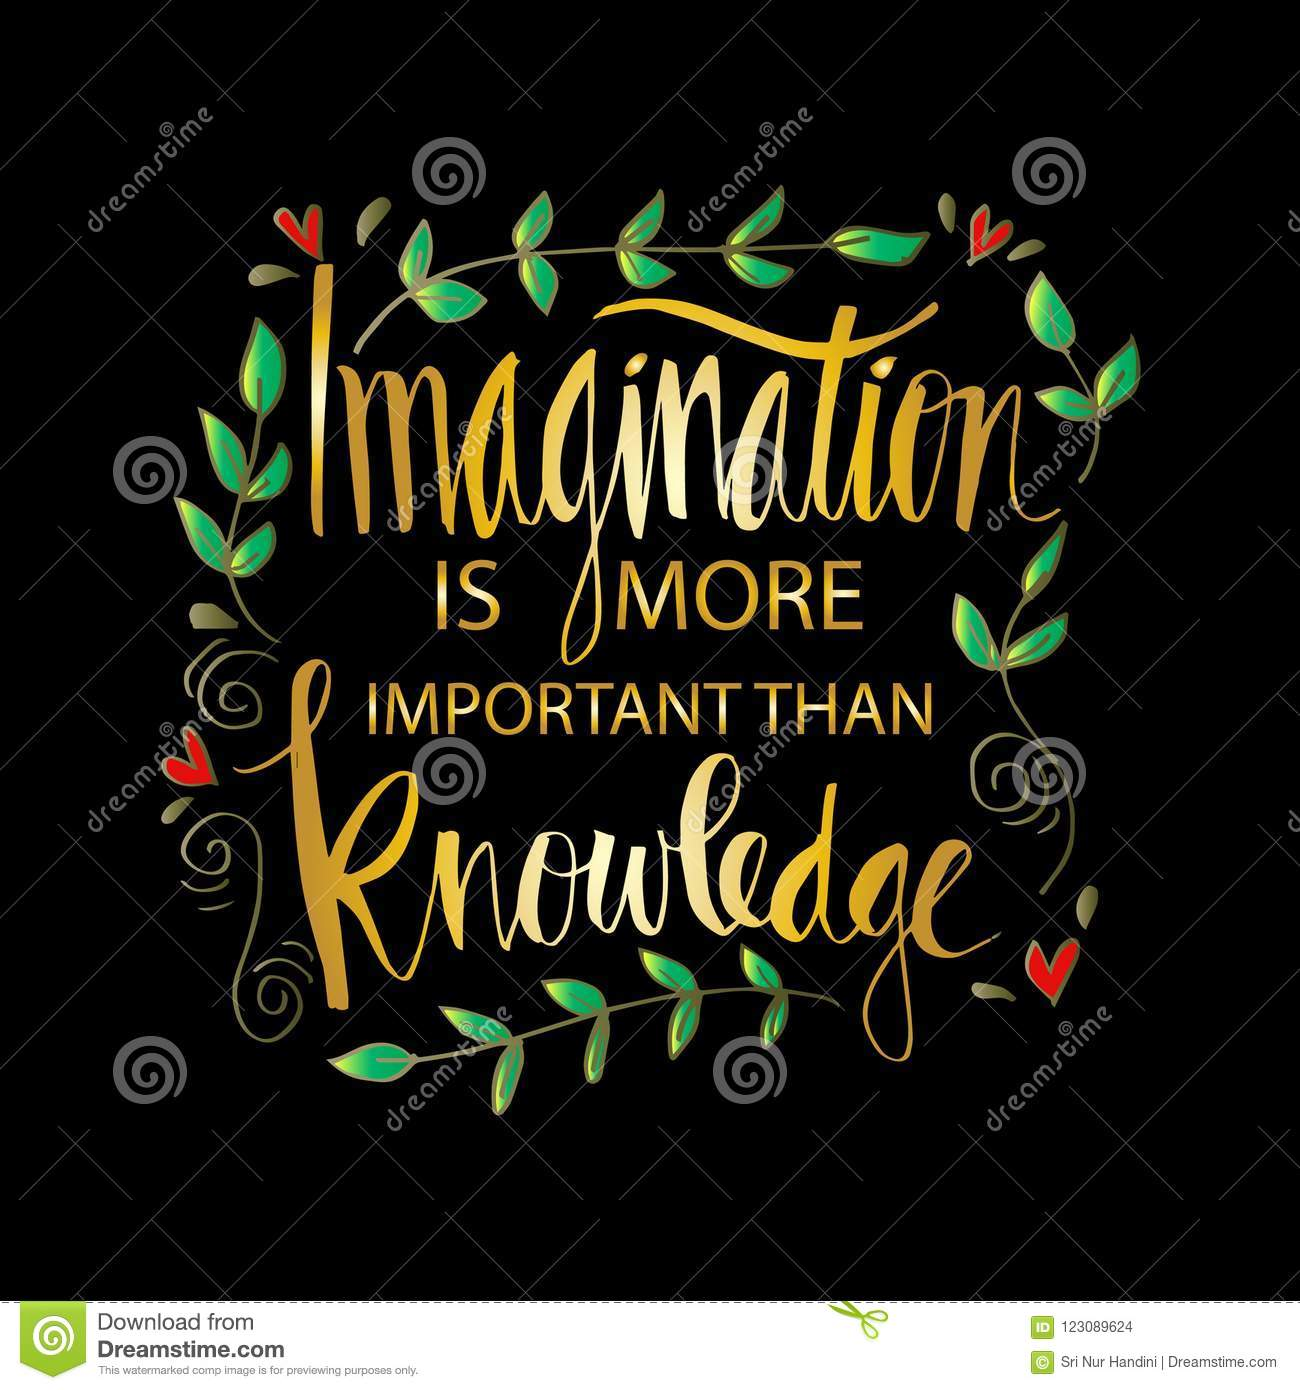 imagine is more important than knowledge